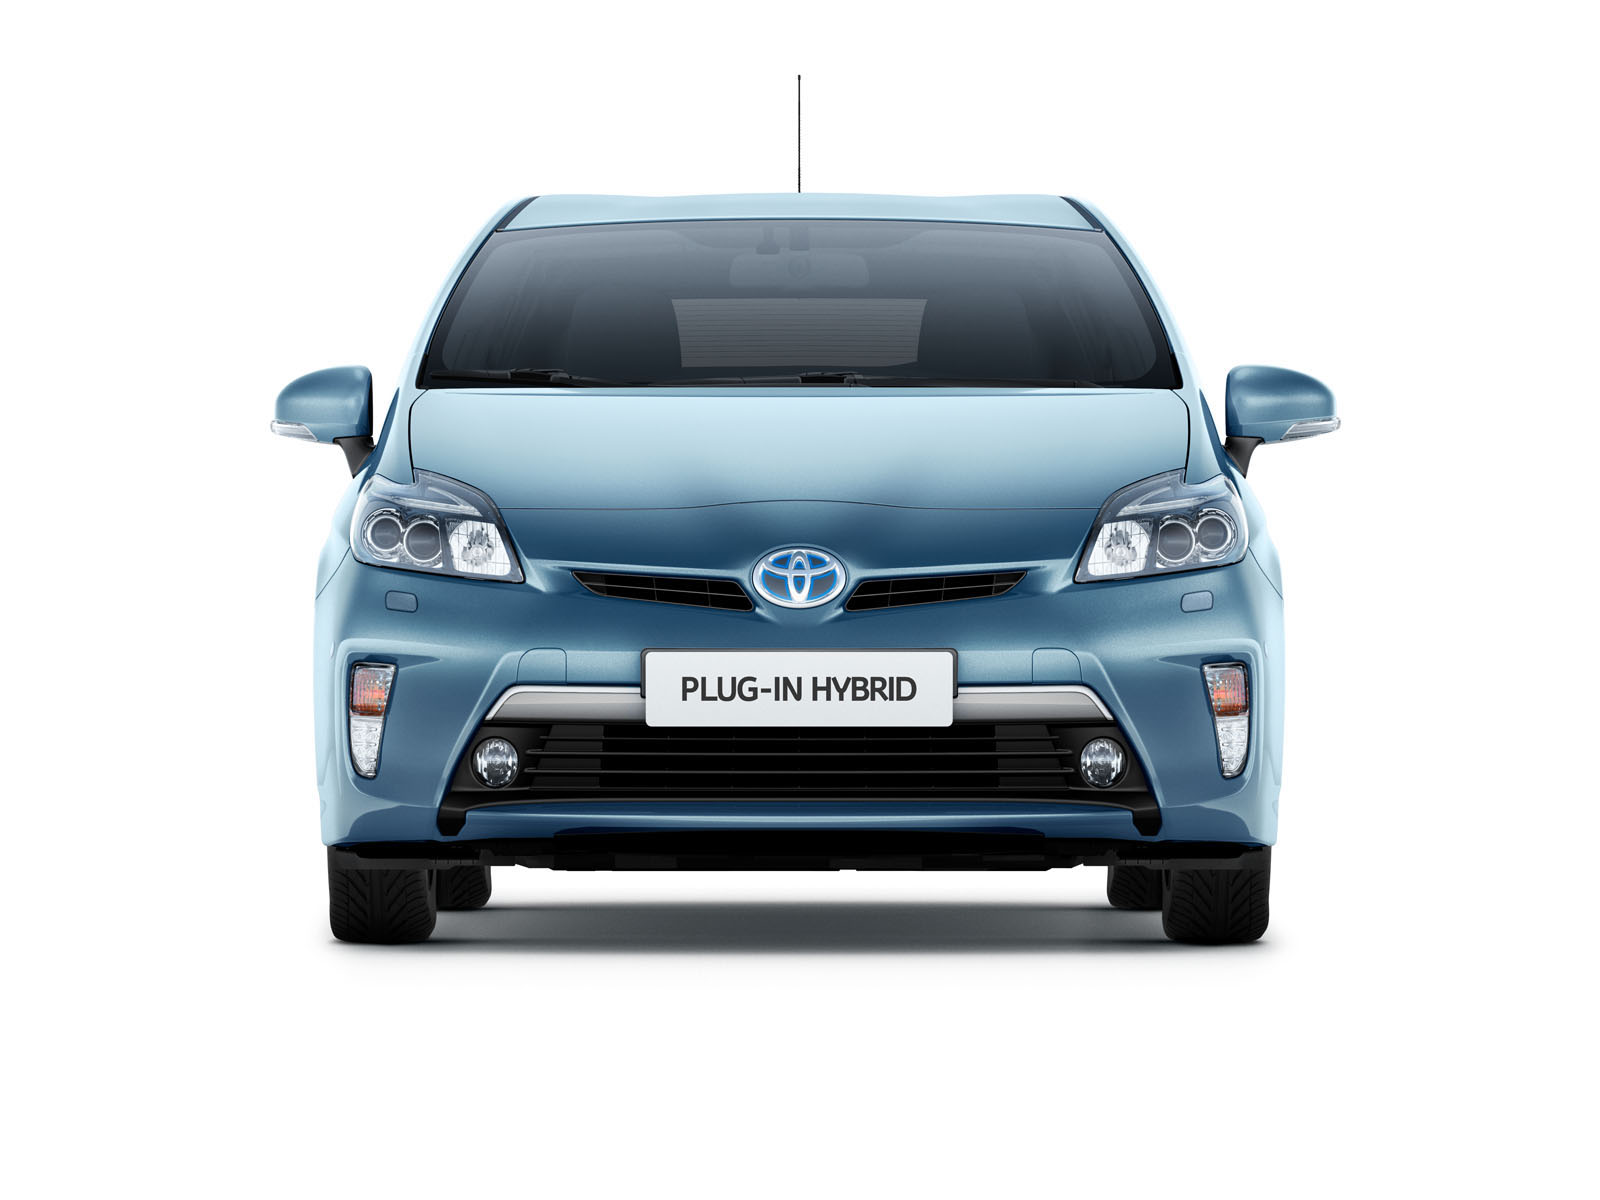 Toyota's plug-in hybrid launch delayed by several months